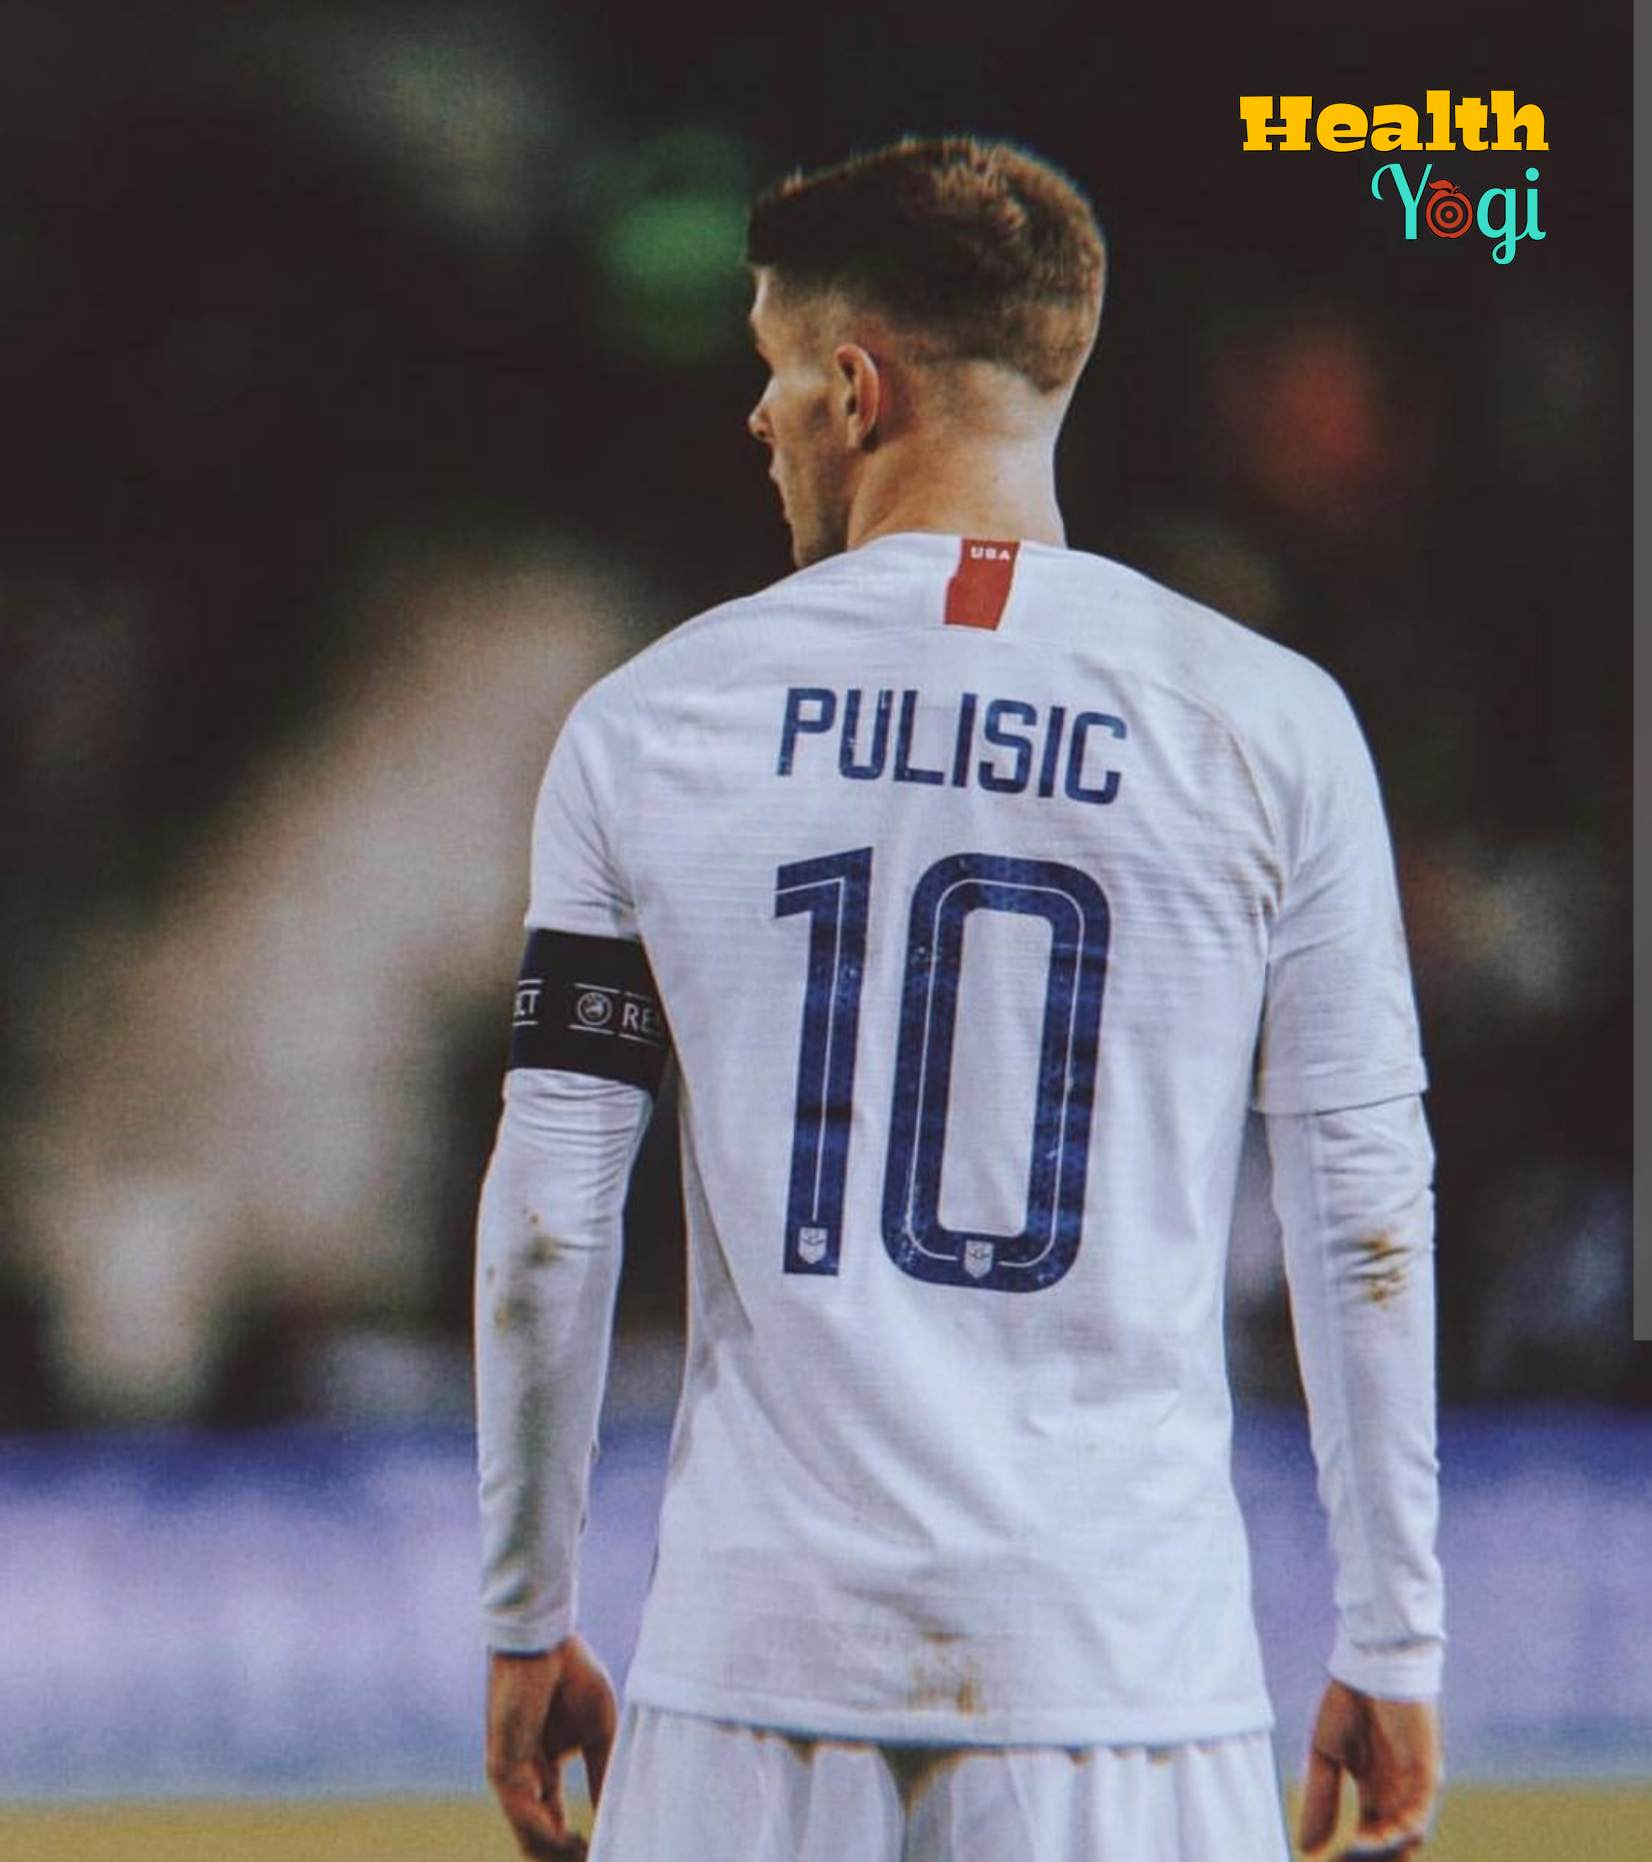 Christian Pulisic Diet Plan and Workout Routine